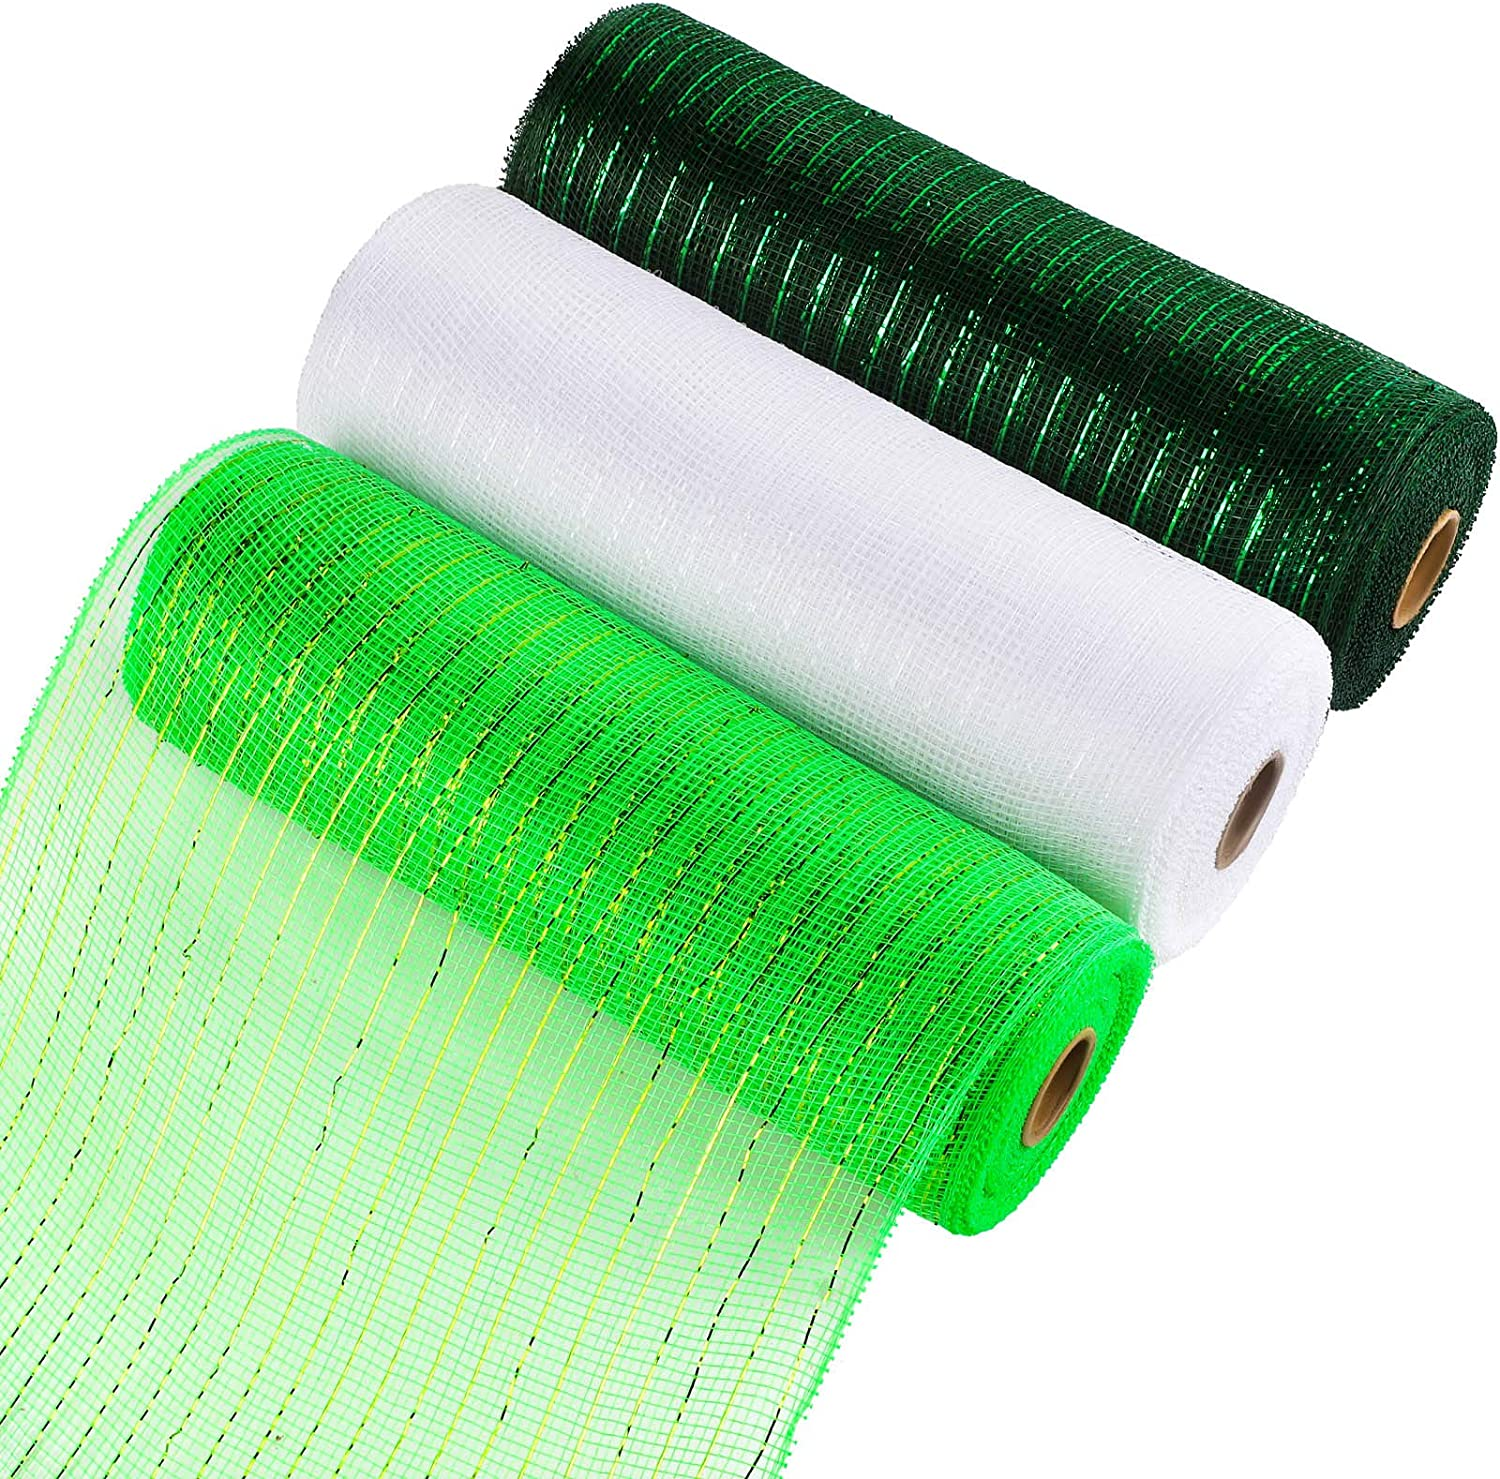 Aneco 3 Rolls Decor Poly Mesh Ribbon 10 Inches x 10 Yards 3 Colors Green, White, Dark Green Christmas Mesh Rolls Metallic Foil Rolls for DIY Project, Christmas Decoration Wreaths